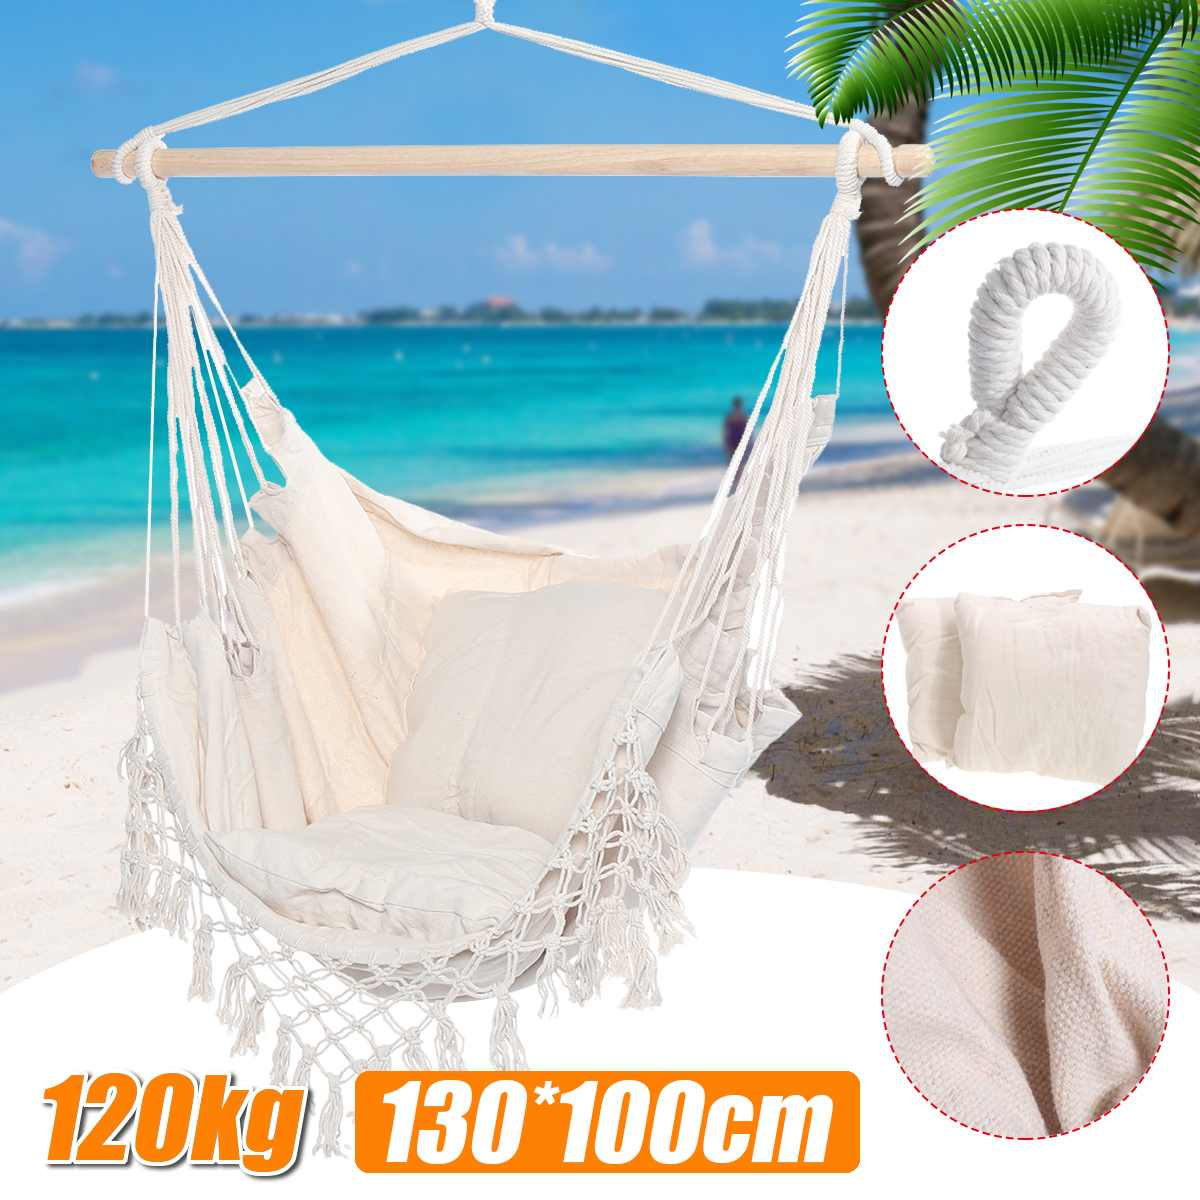 Indoor Outdoor Fringed Camping Hammock Swing Chair with pillows Garden Hanging Chair Travel For Child Adult 120kg Capacity